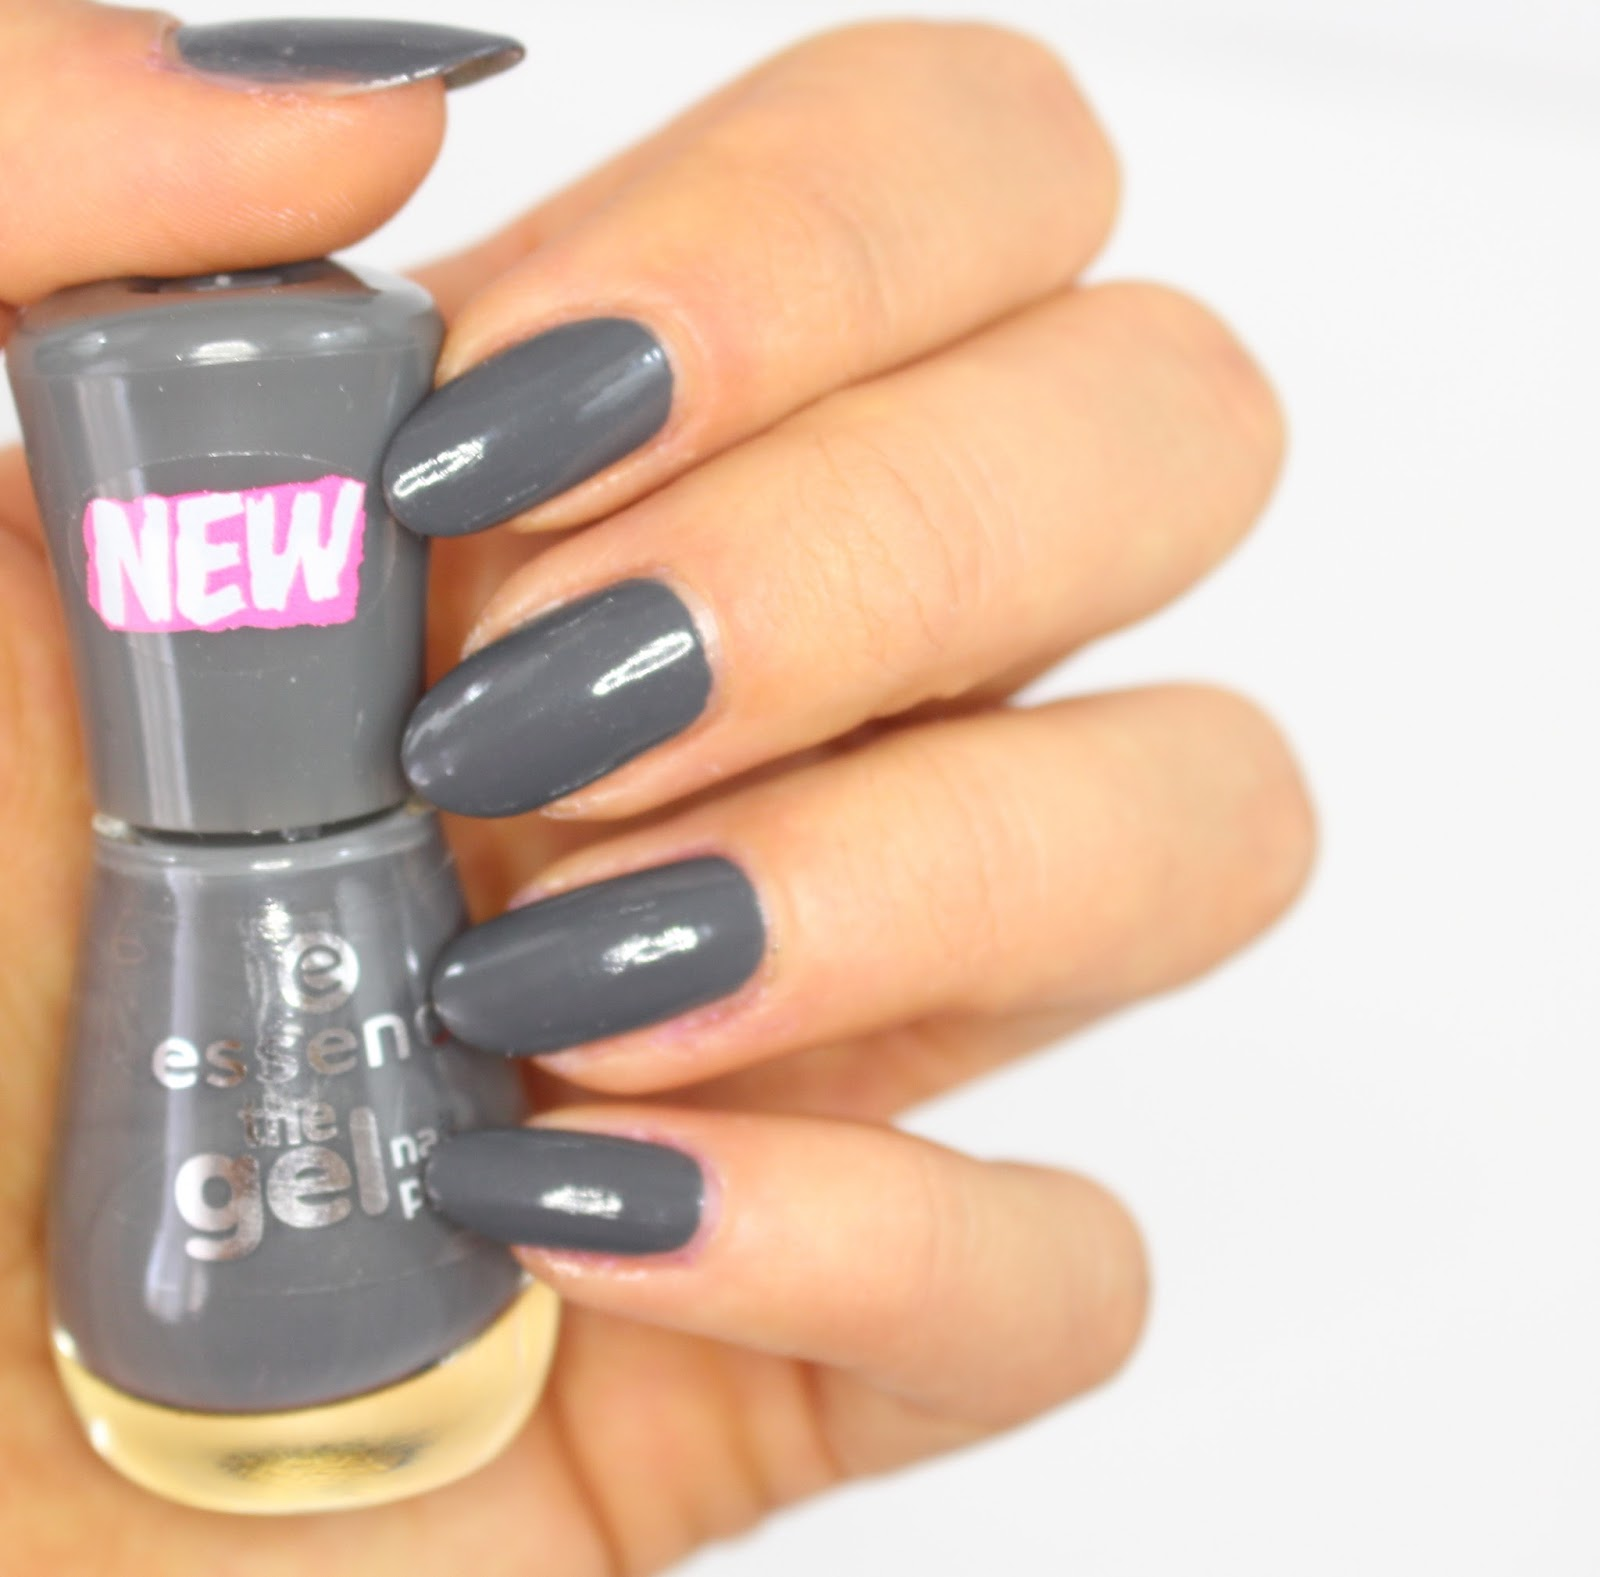 ManiMonday: Essence Rock My World Nail Polish - My Beauty Box